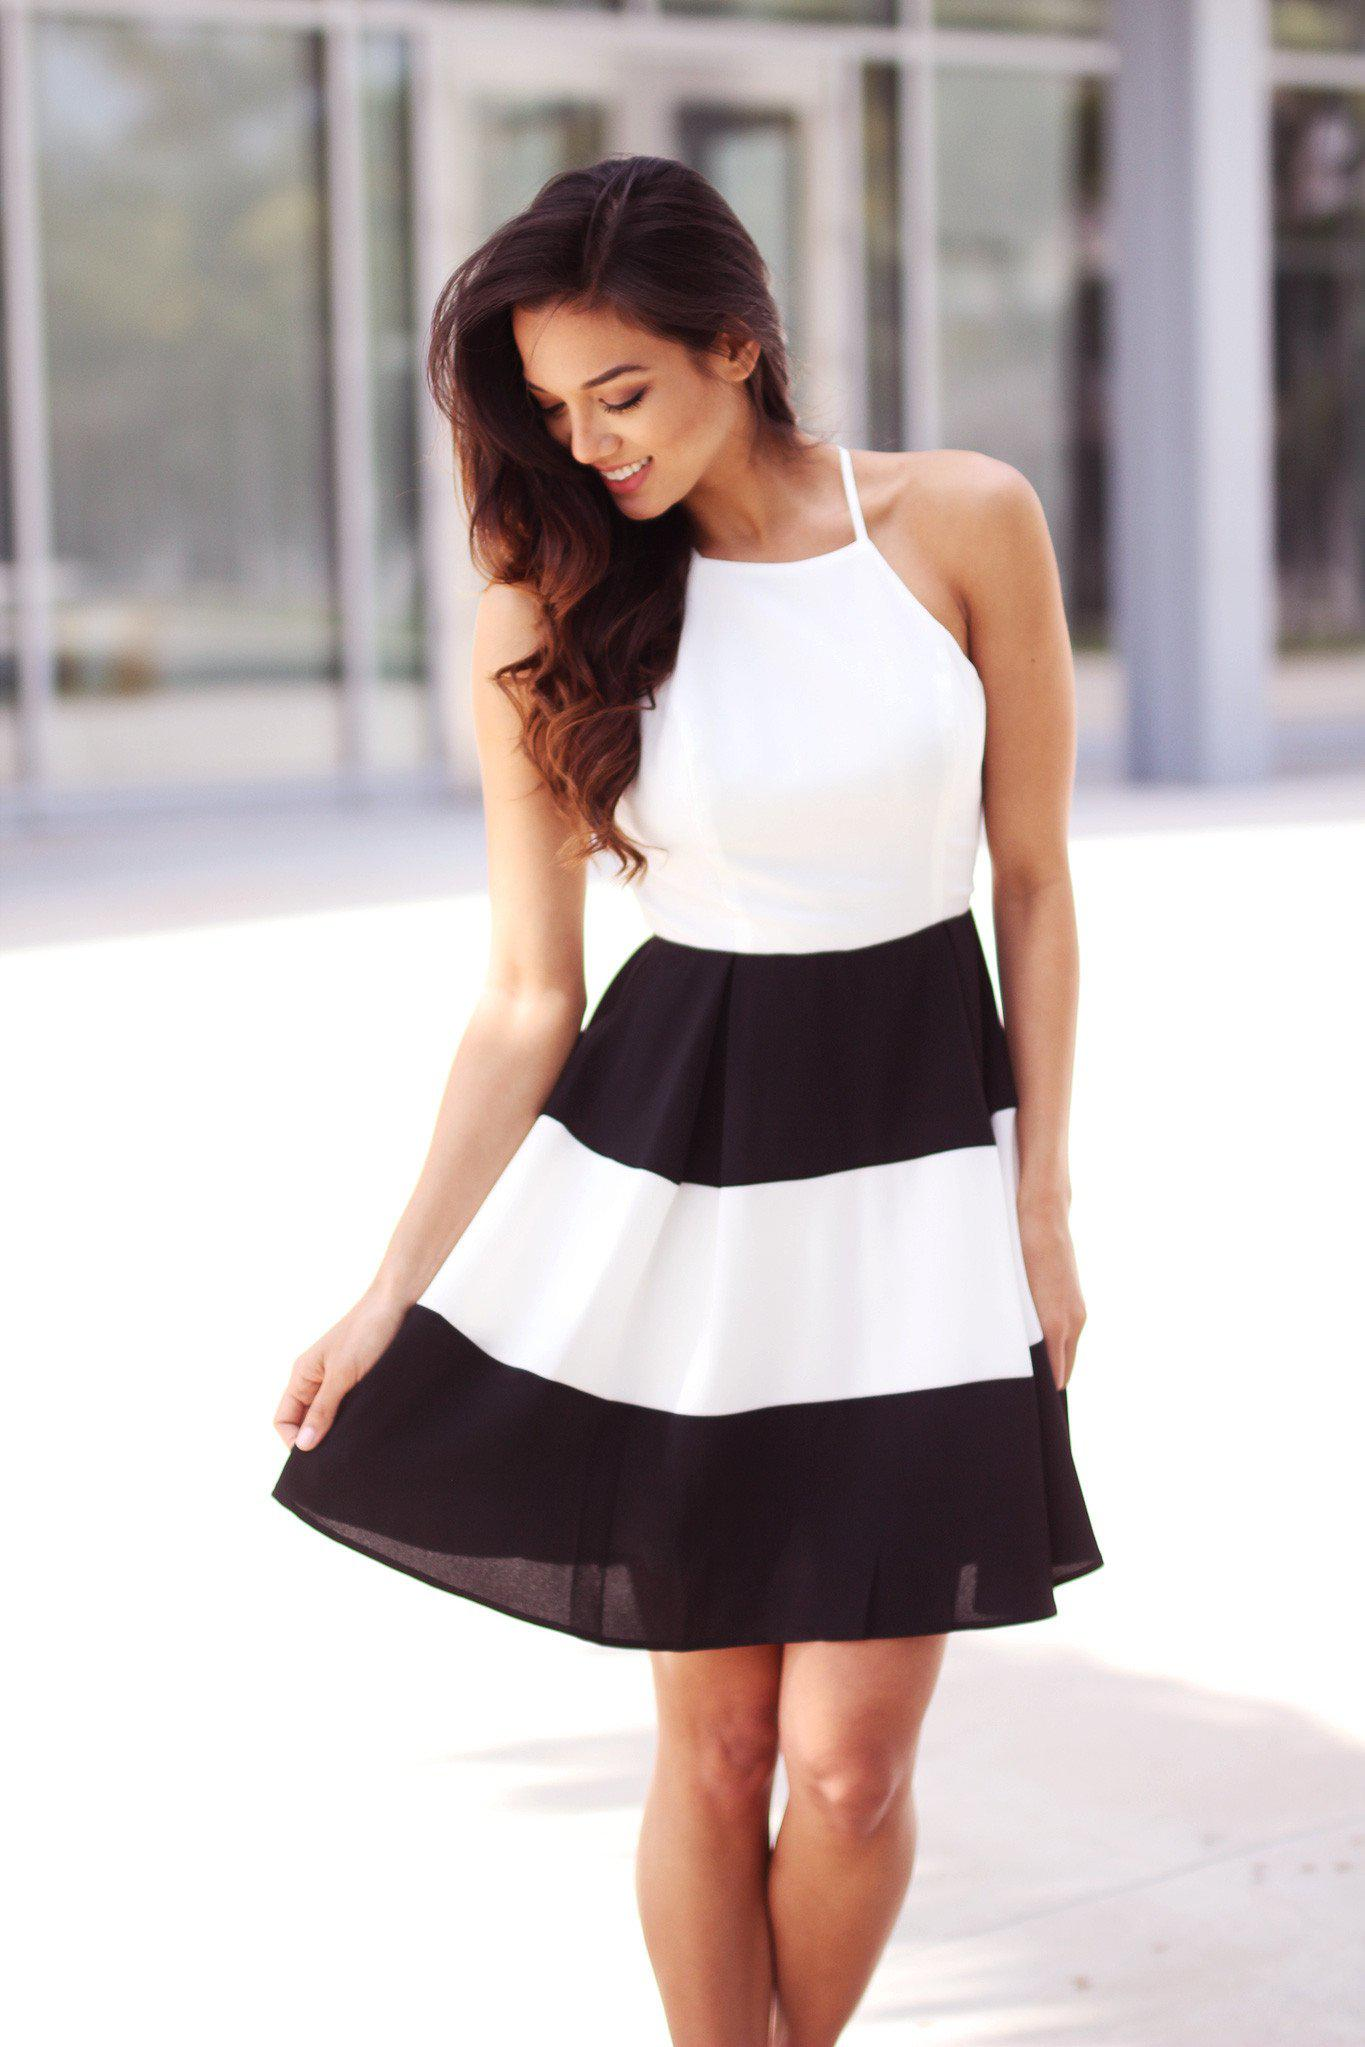 White and black color blocked dress